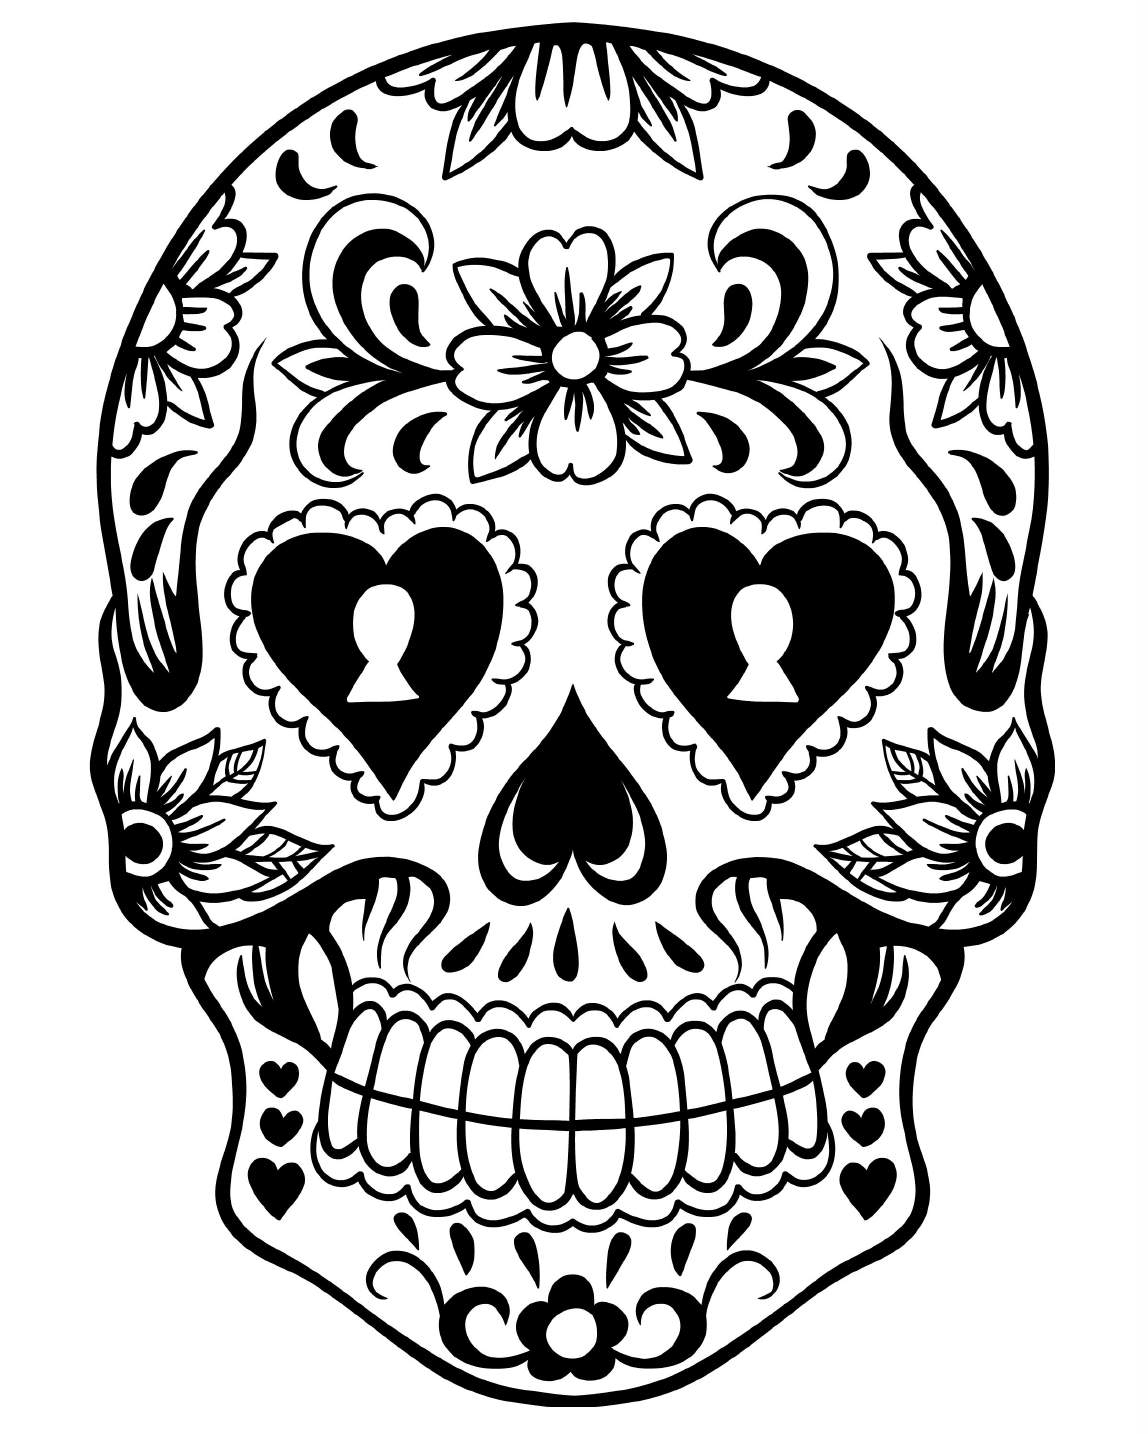 coloring printable day of the dead get this day of the dead coloring pages online printable dead day coloring the of printable